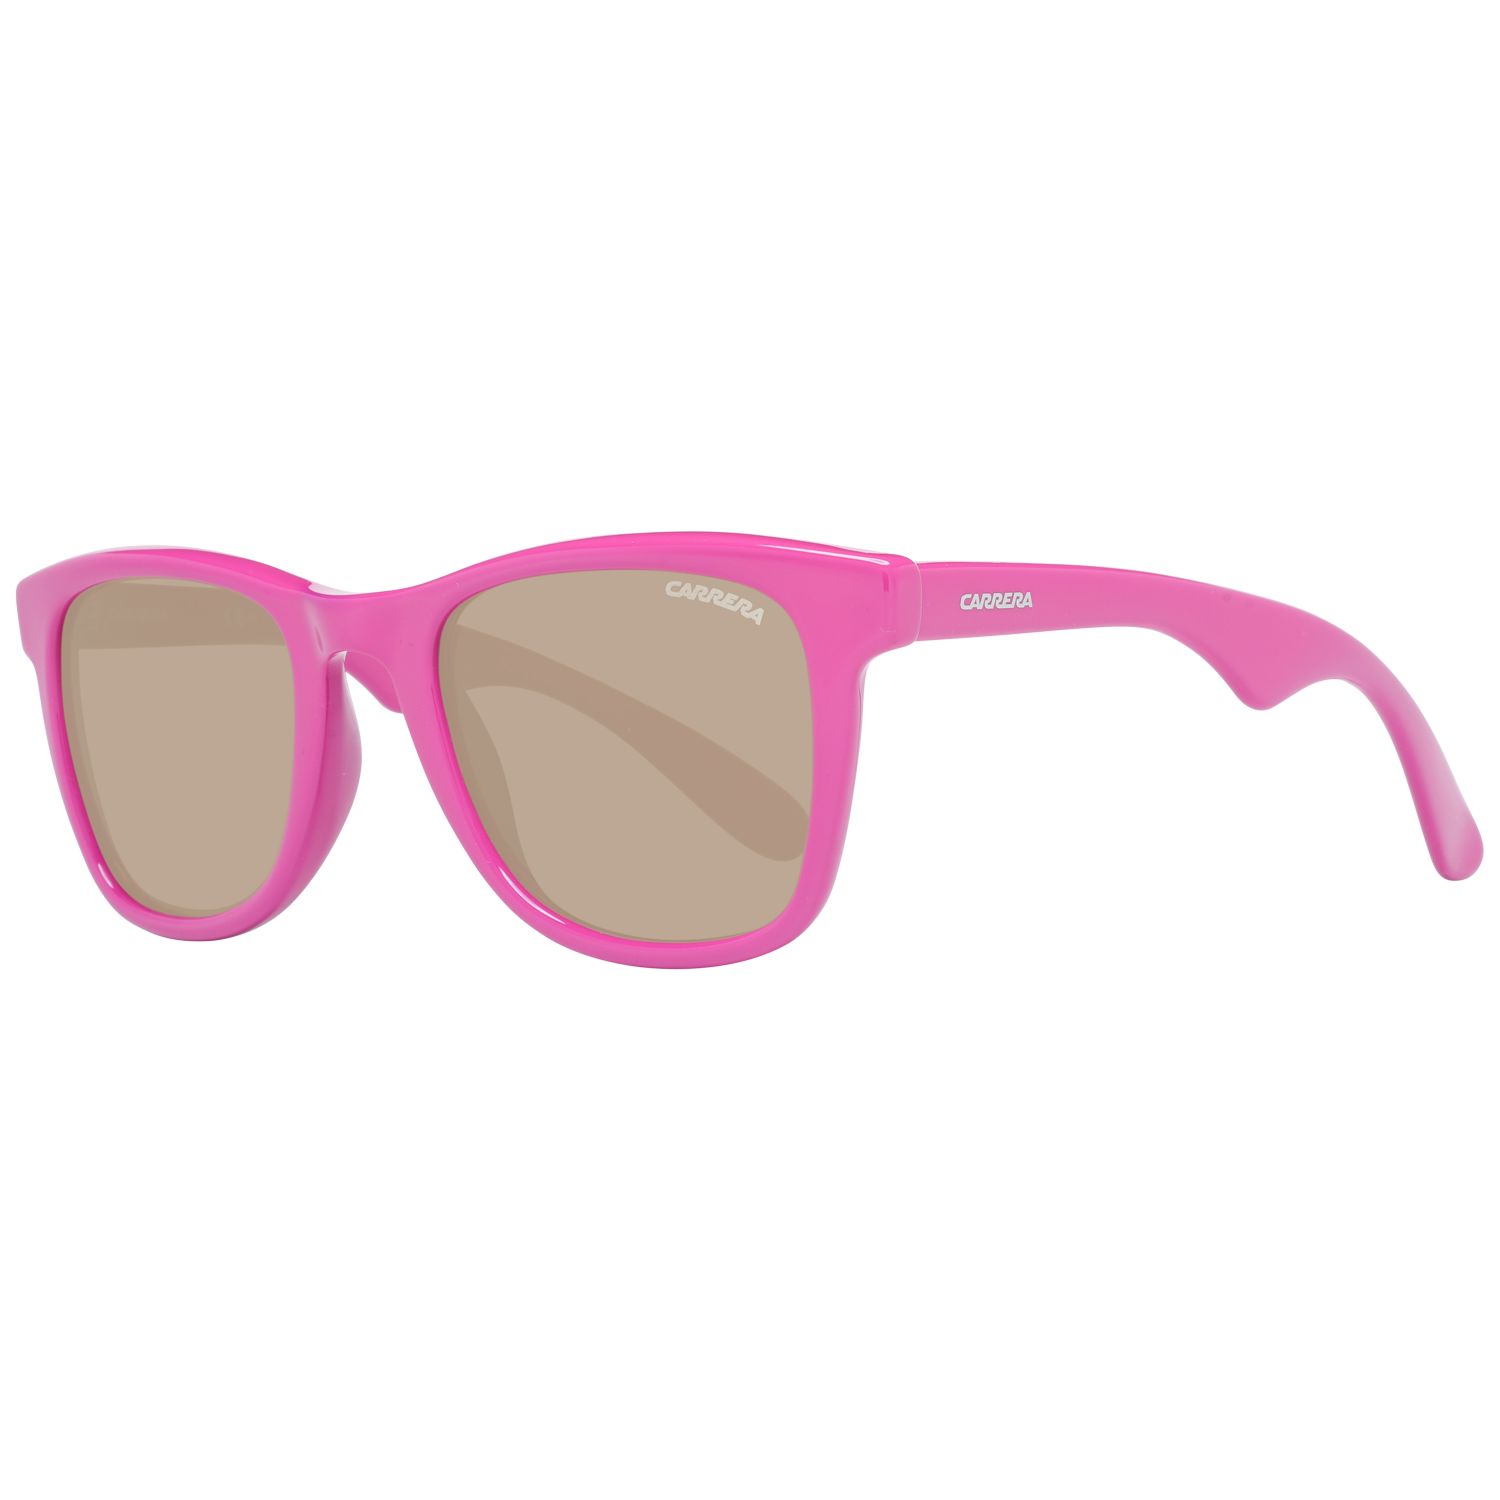 Carrera Sunglasses CA000L/N 2R4/04 51 Unisex Purple